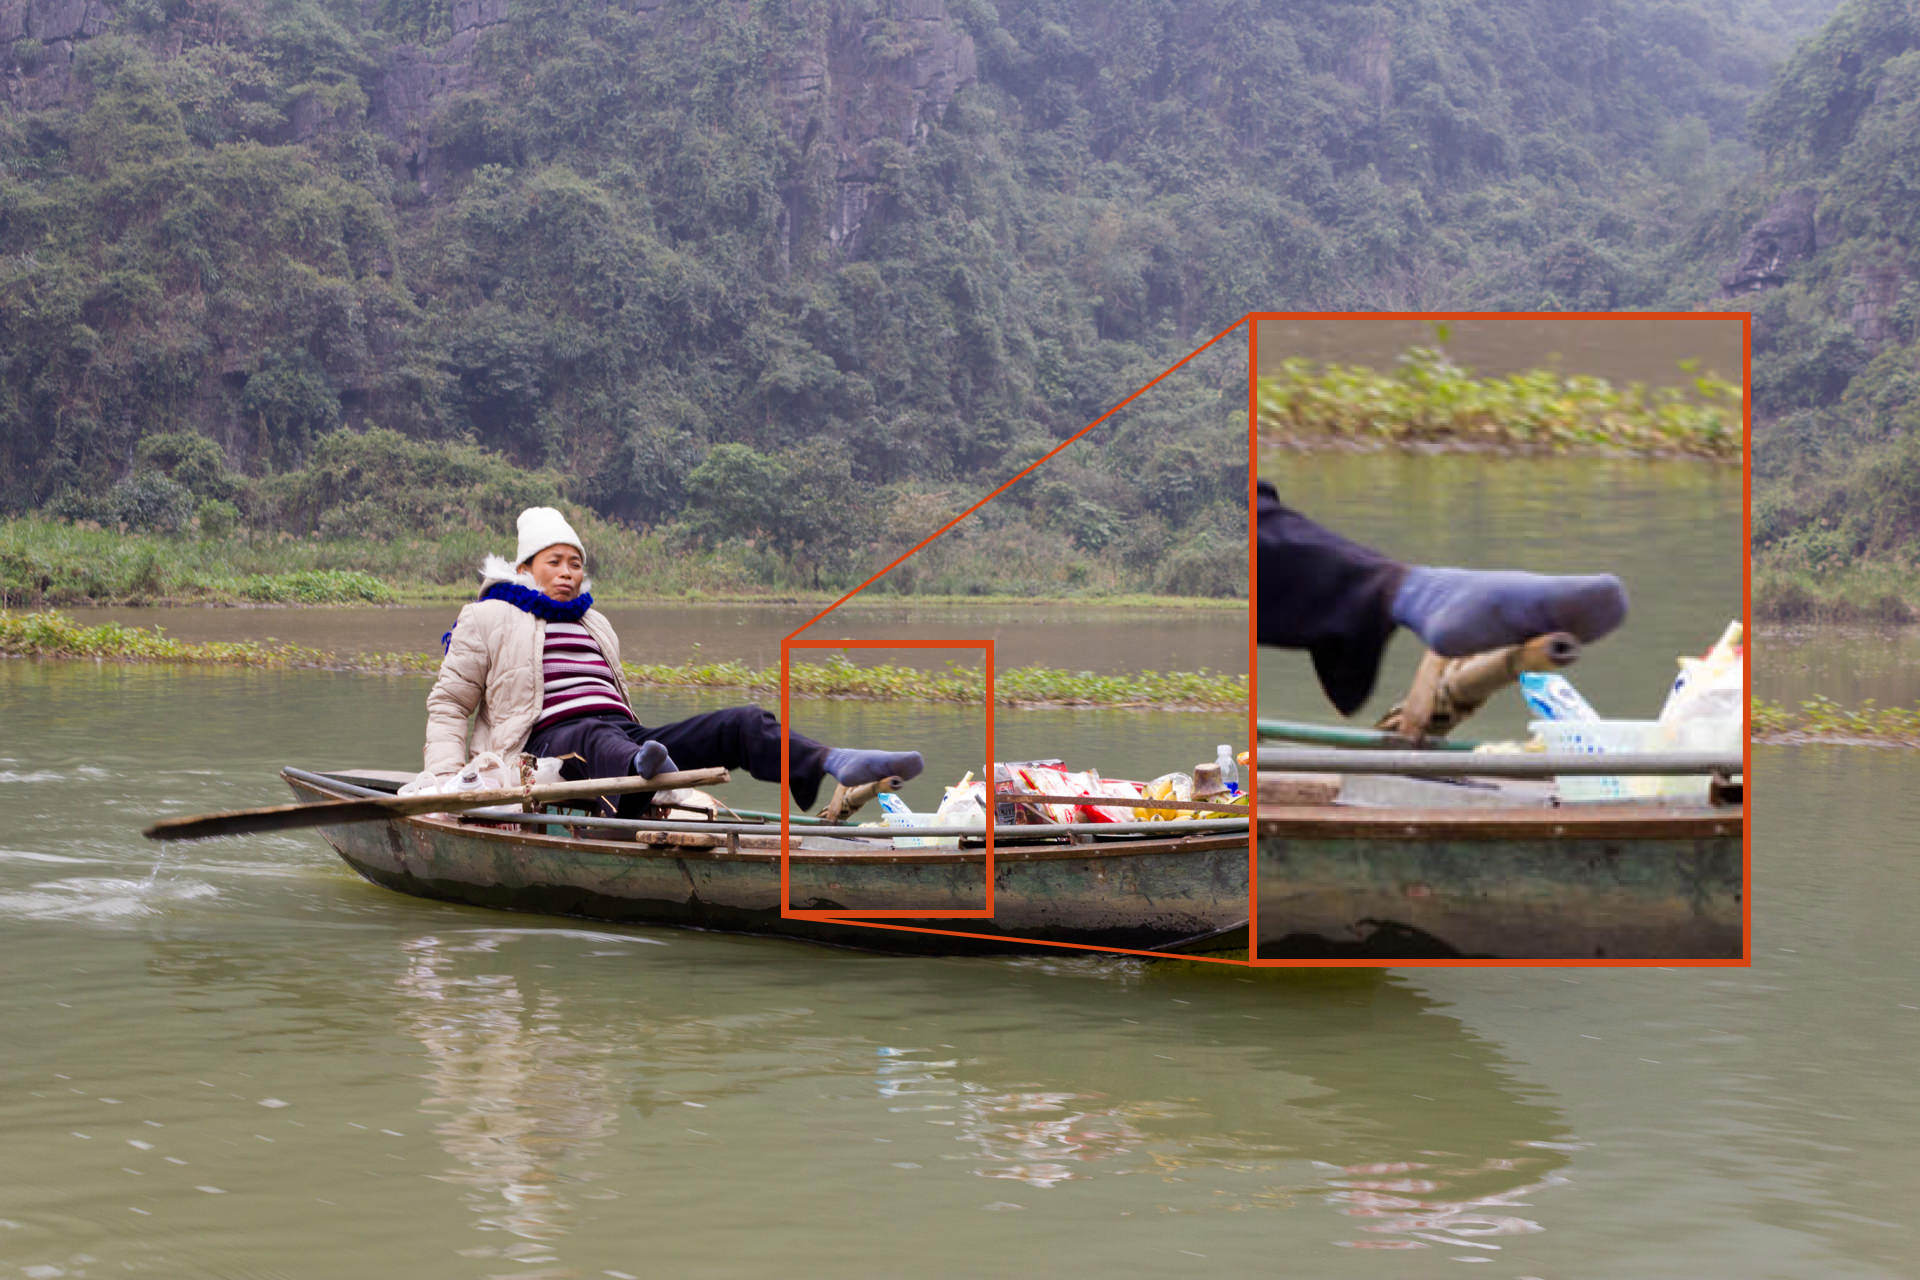 A blurred photo of a person in a boat, caused by a shutter speed too slow to capture the image